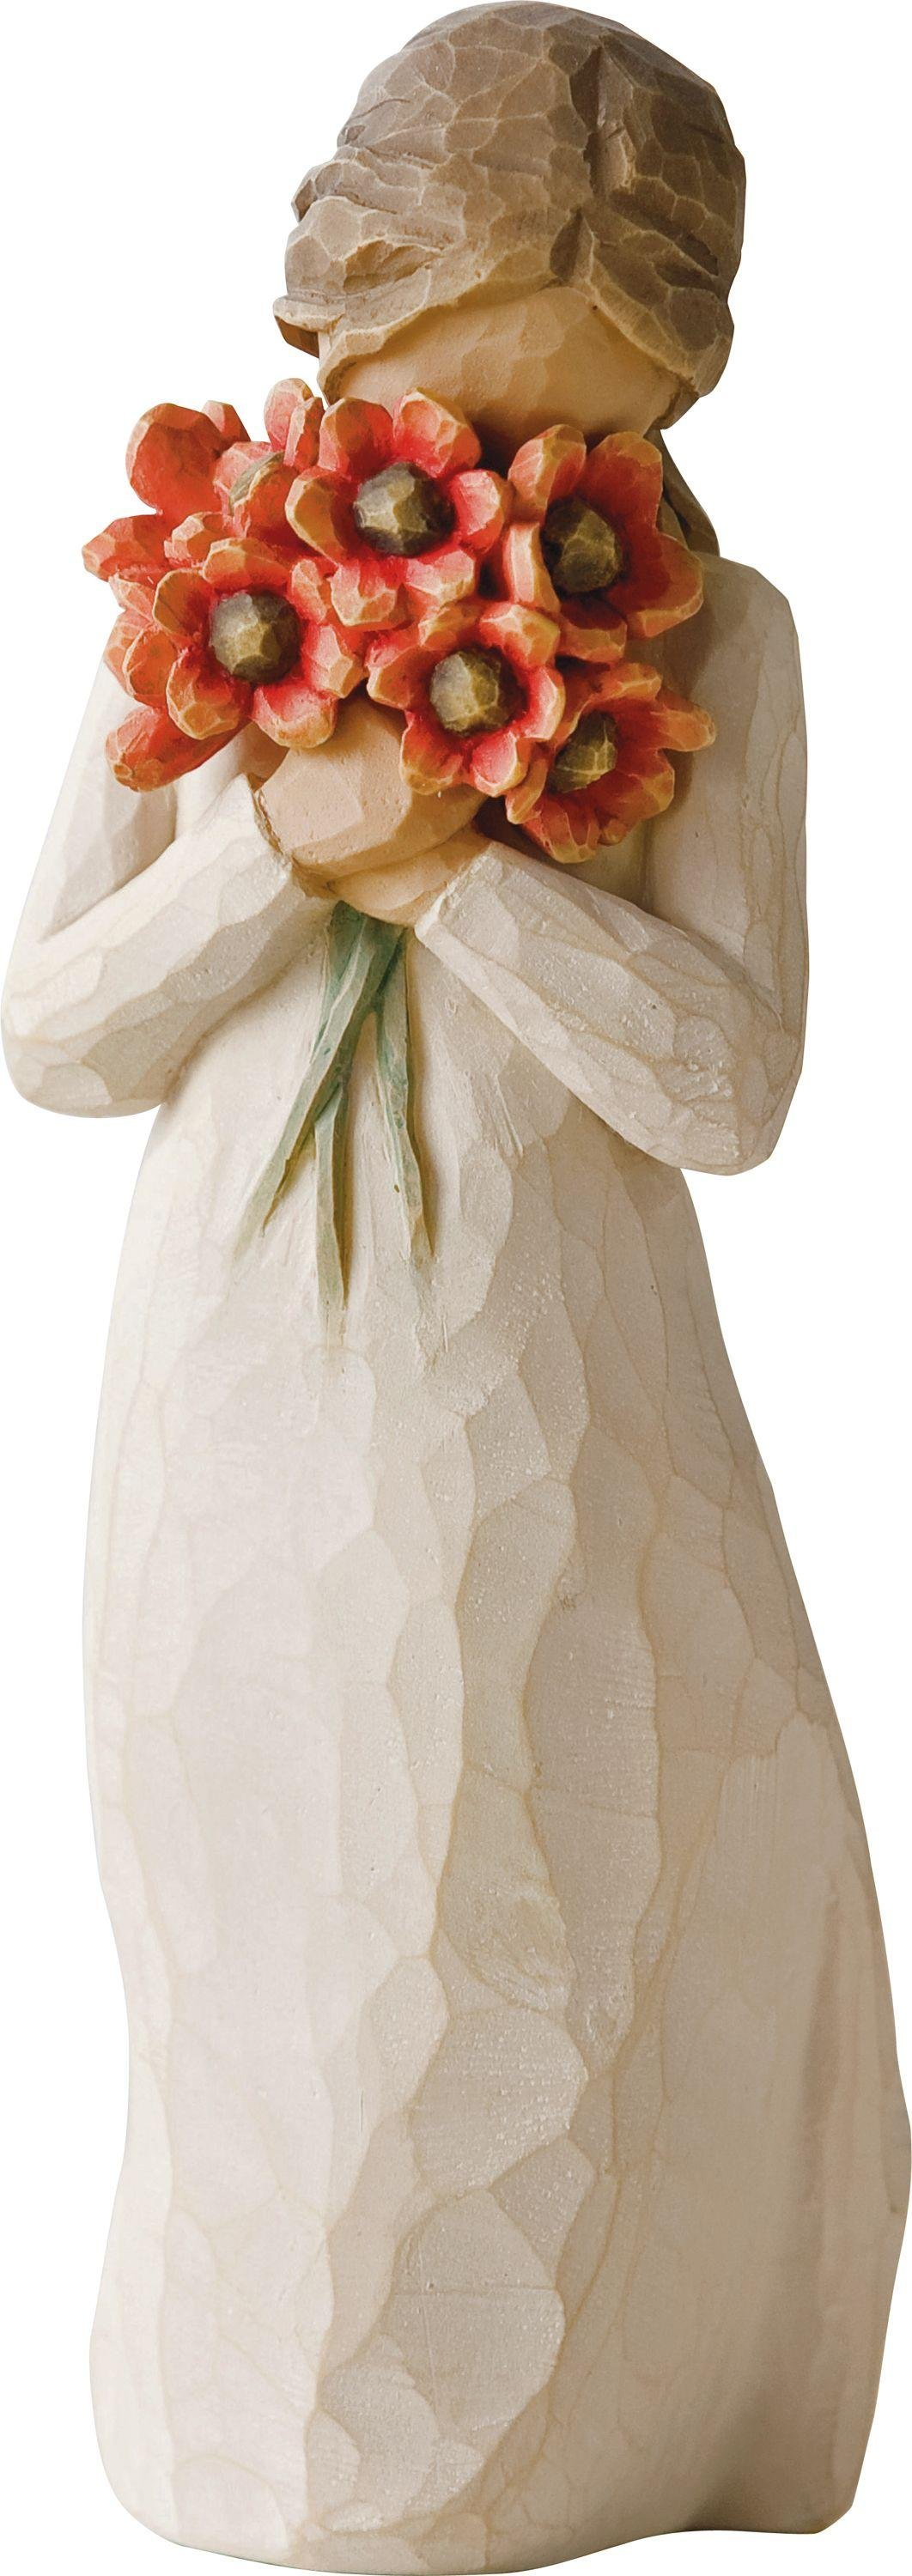 Willow Tree - Surrounded By Love - Figurine